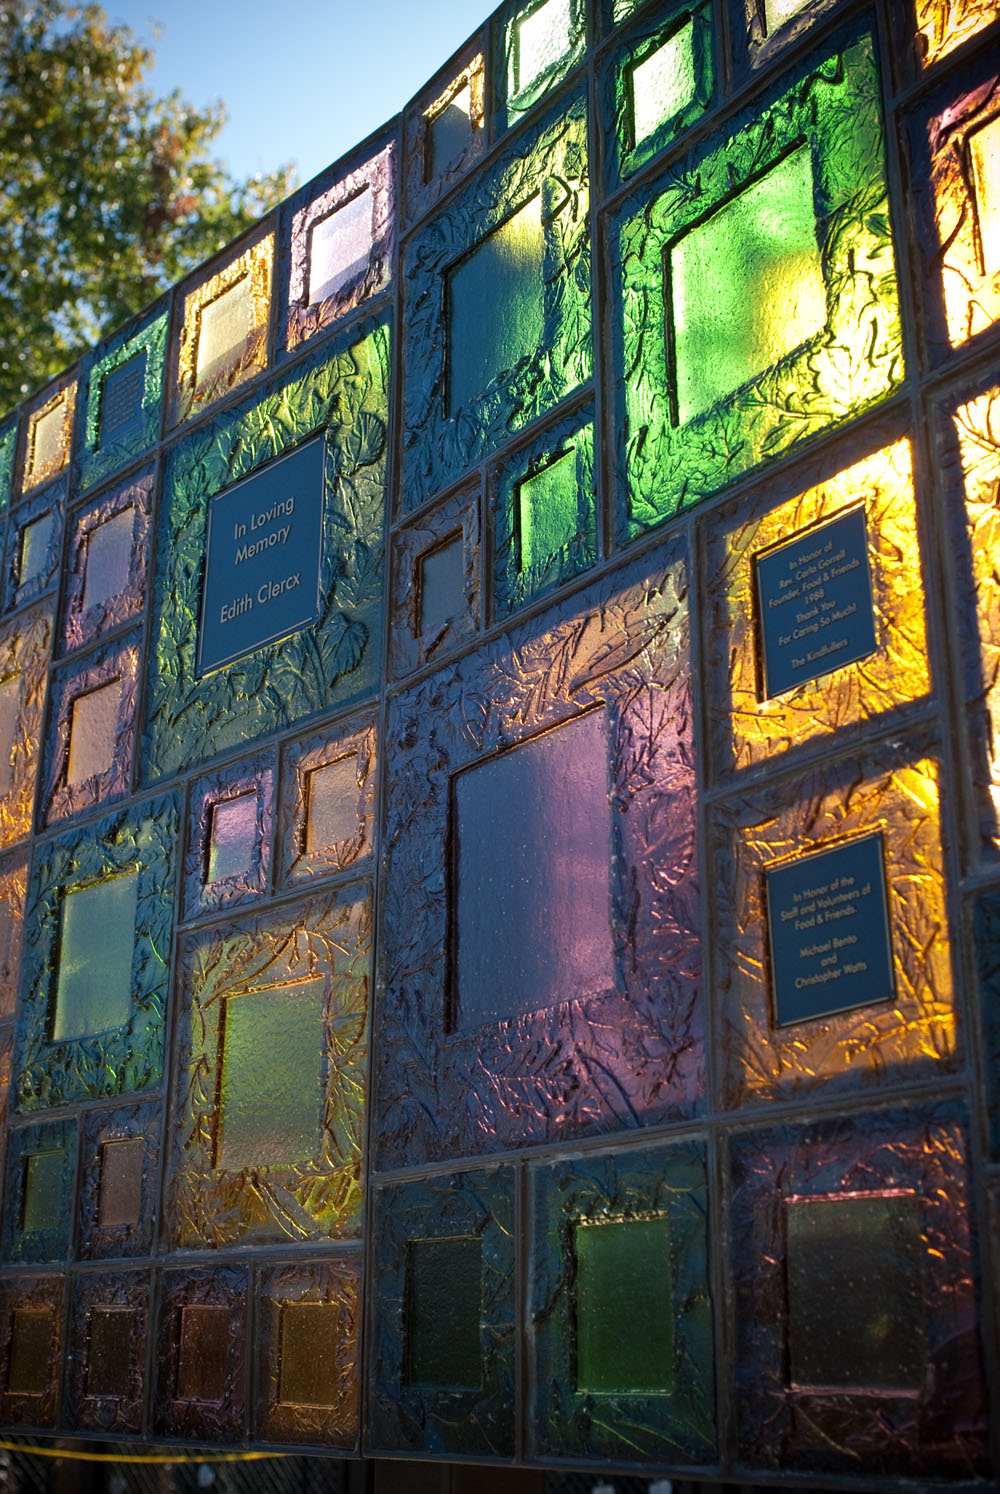 ... food_u0026_friends.art_wall.glass & Public Art/ Monuments | Washington Glass Studio